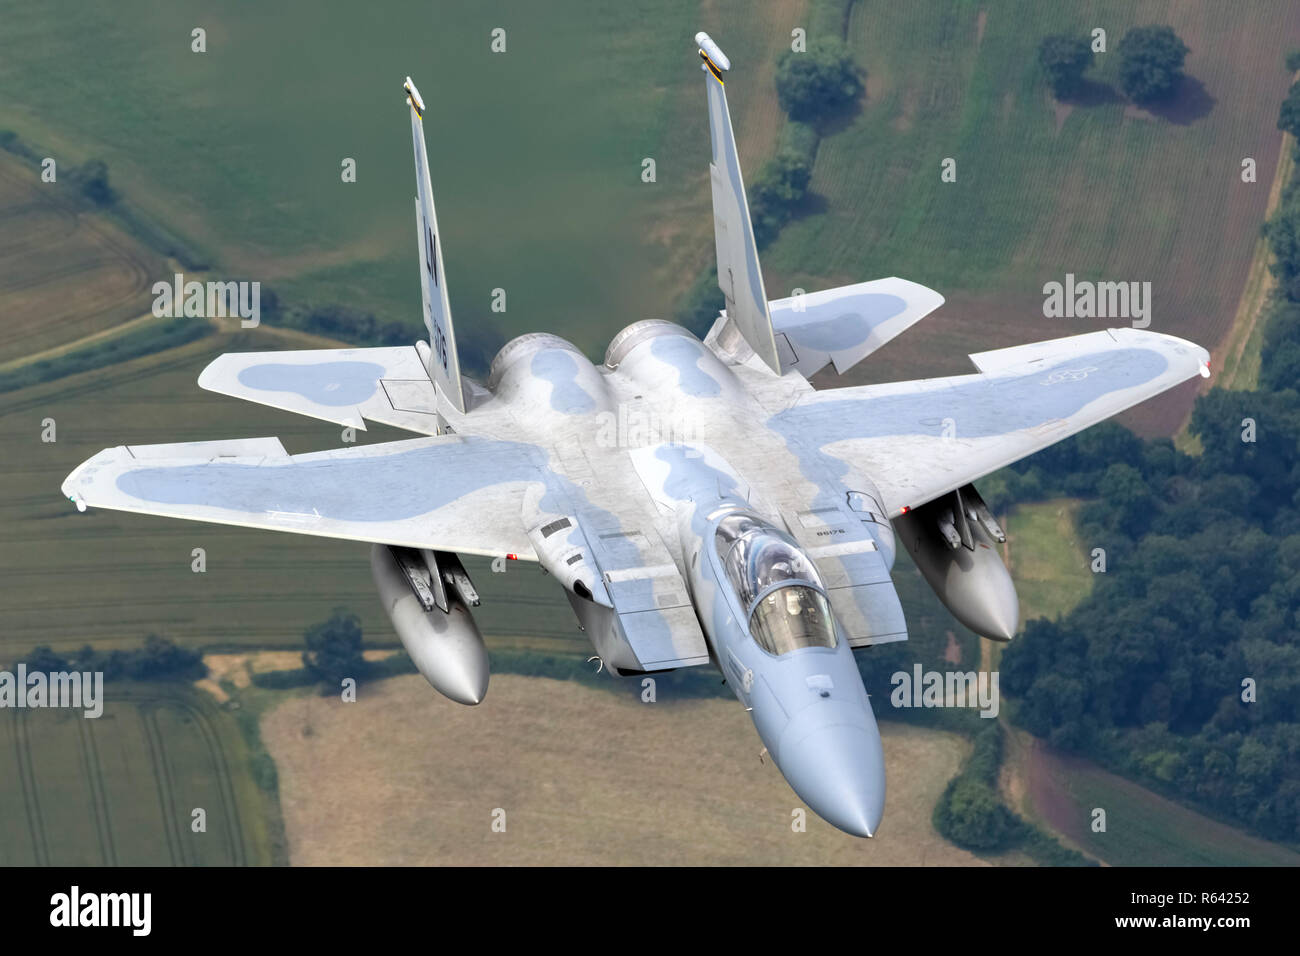 United States Air Force (USAF) McDonnell Douglas F-15 Eagle in flight. Photographed at Royal International Air Tattoo (RIAT) - Stock Image